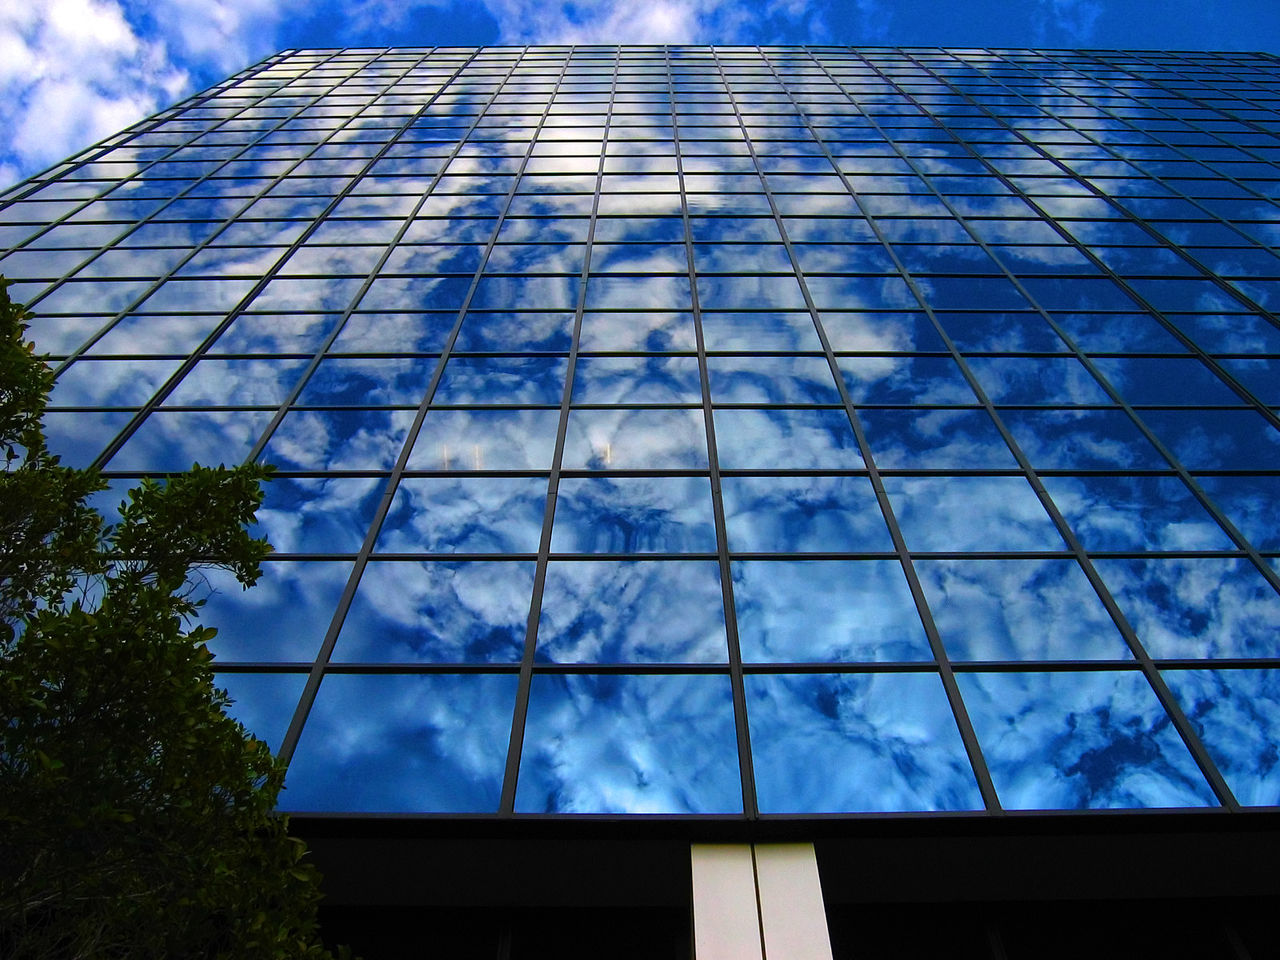 Architecture Blue Building Exterior Built Structure City Cloud - Sky Day Growth Low Angle View Modern Nature No People Outdoors Sky Skyscraper Tree